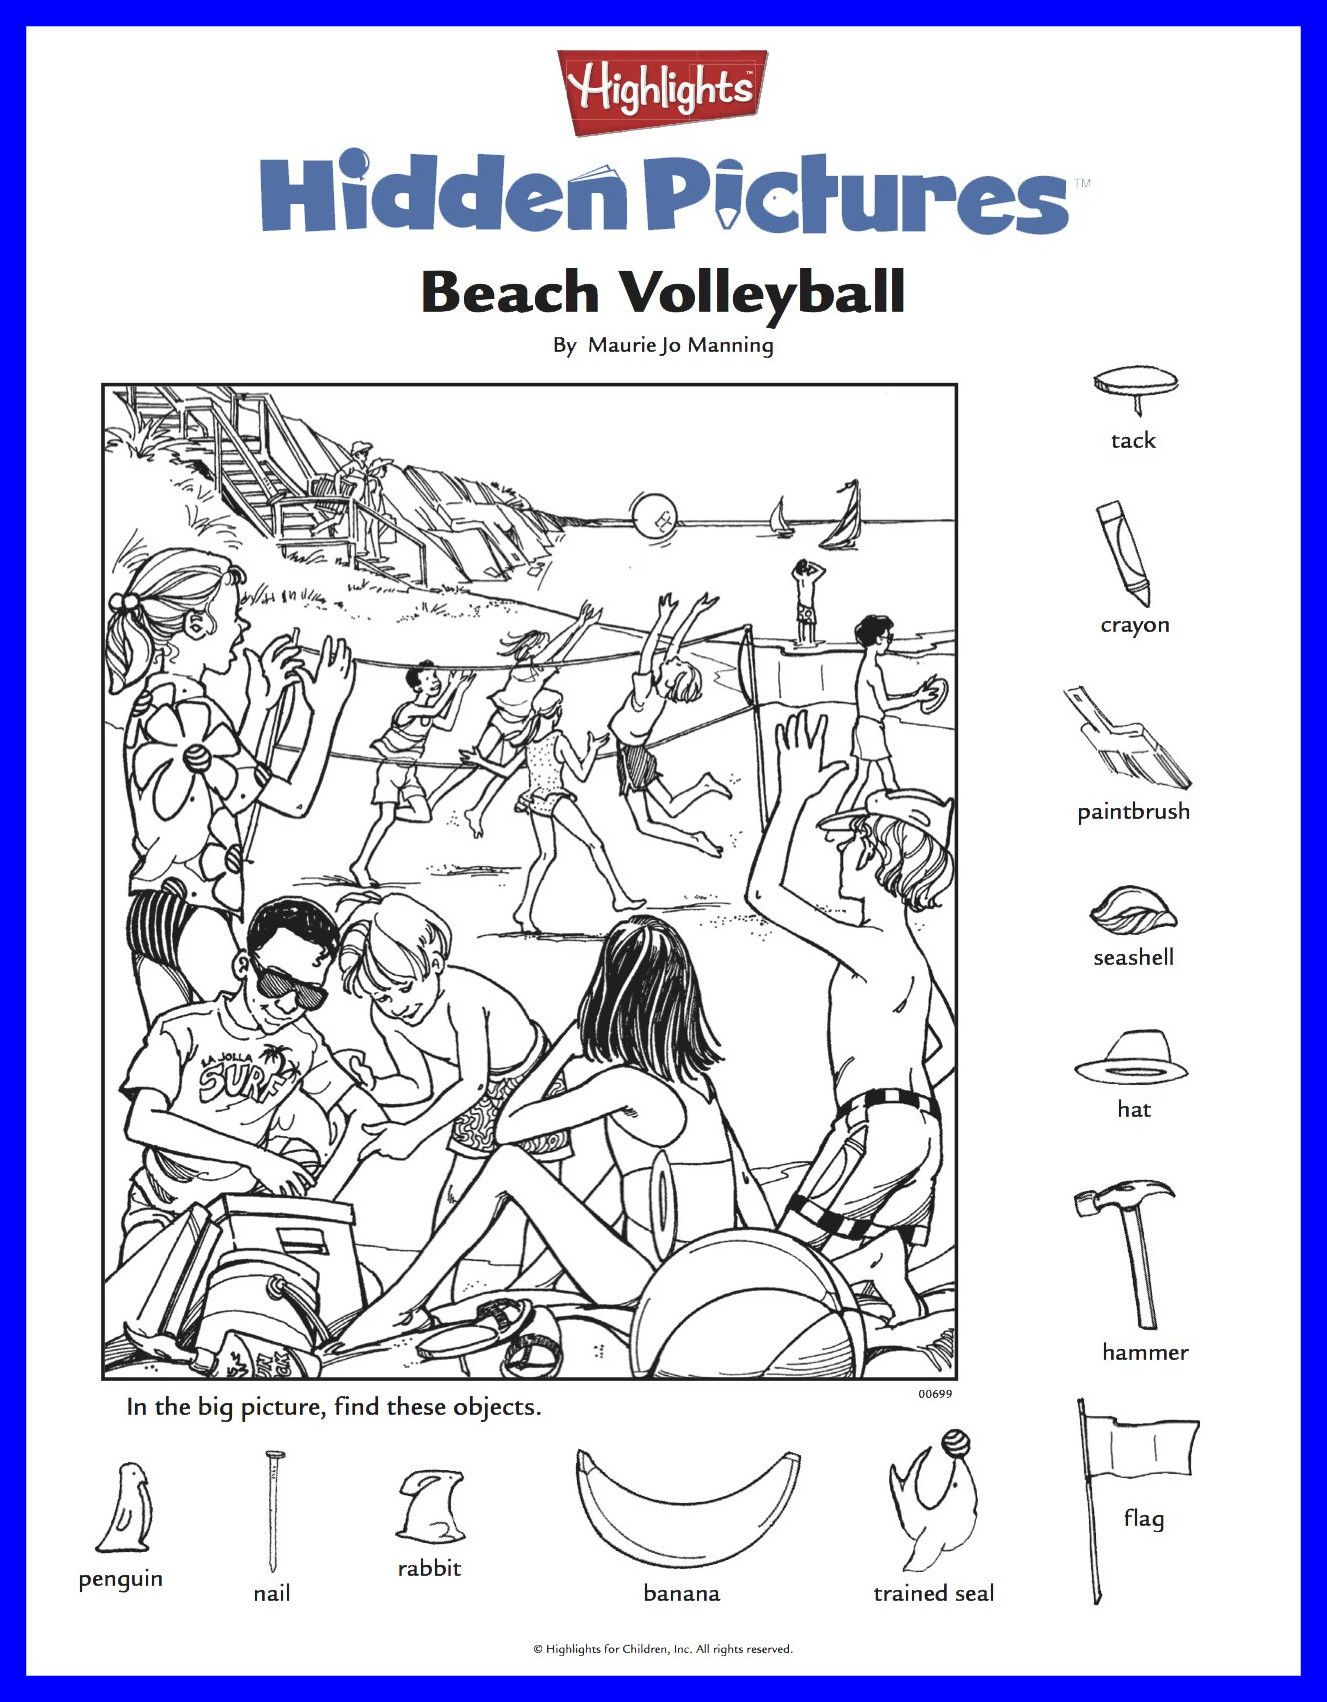 Highlights Hidden Pictures Printable Worksheets Awesome